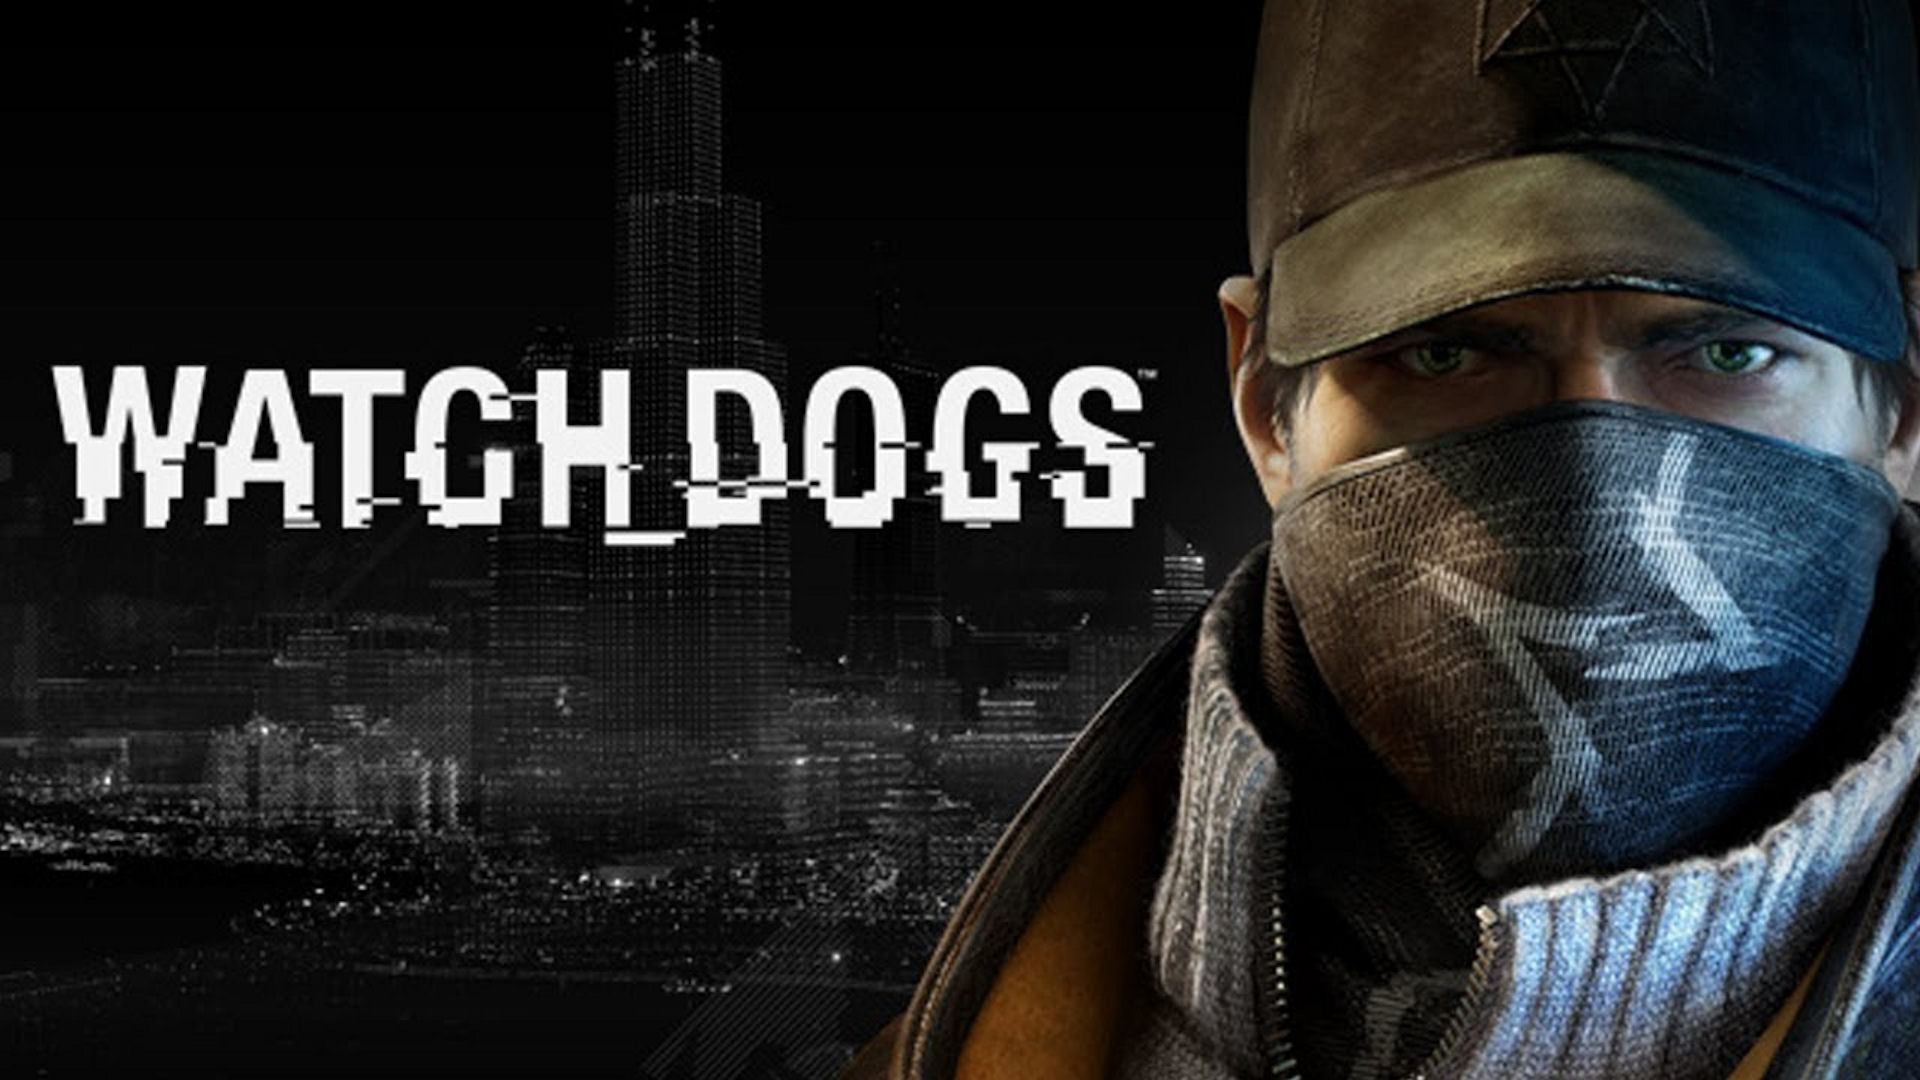 Regalos de Papa Juaner - Página 12 Watch-dogs-wallpaper